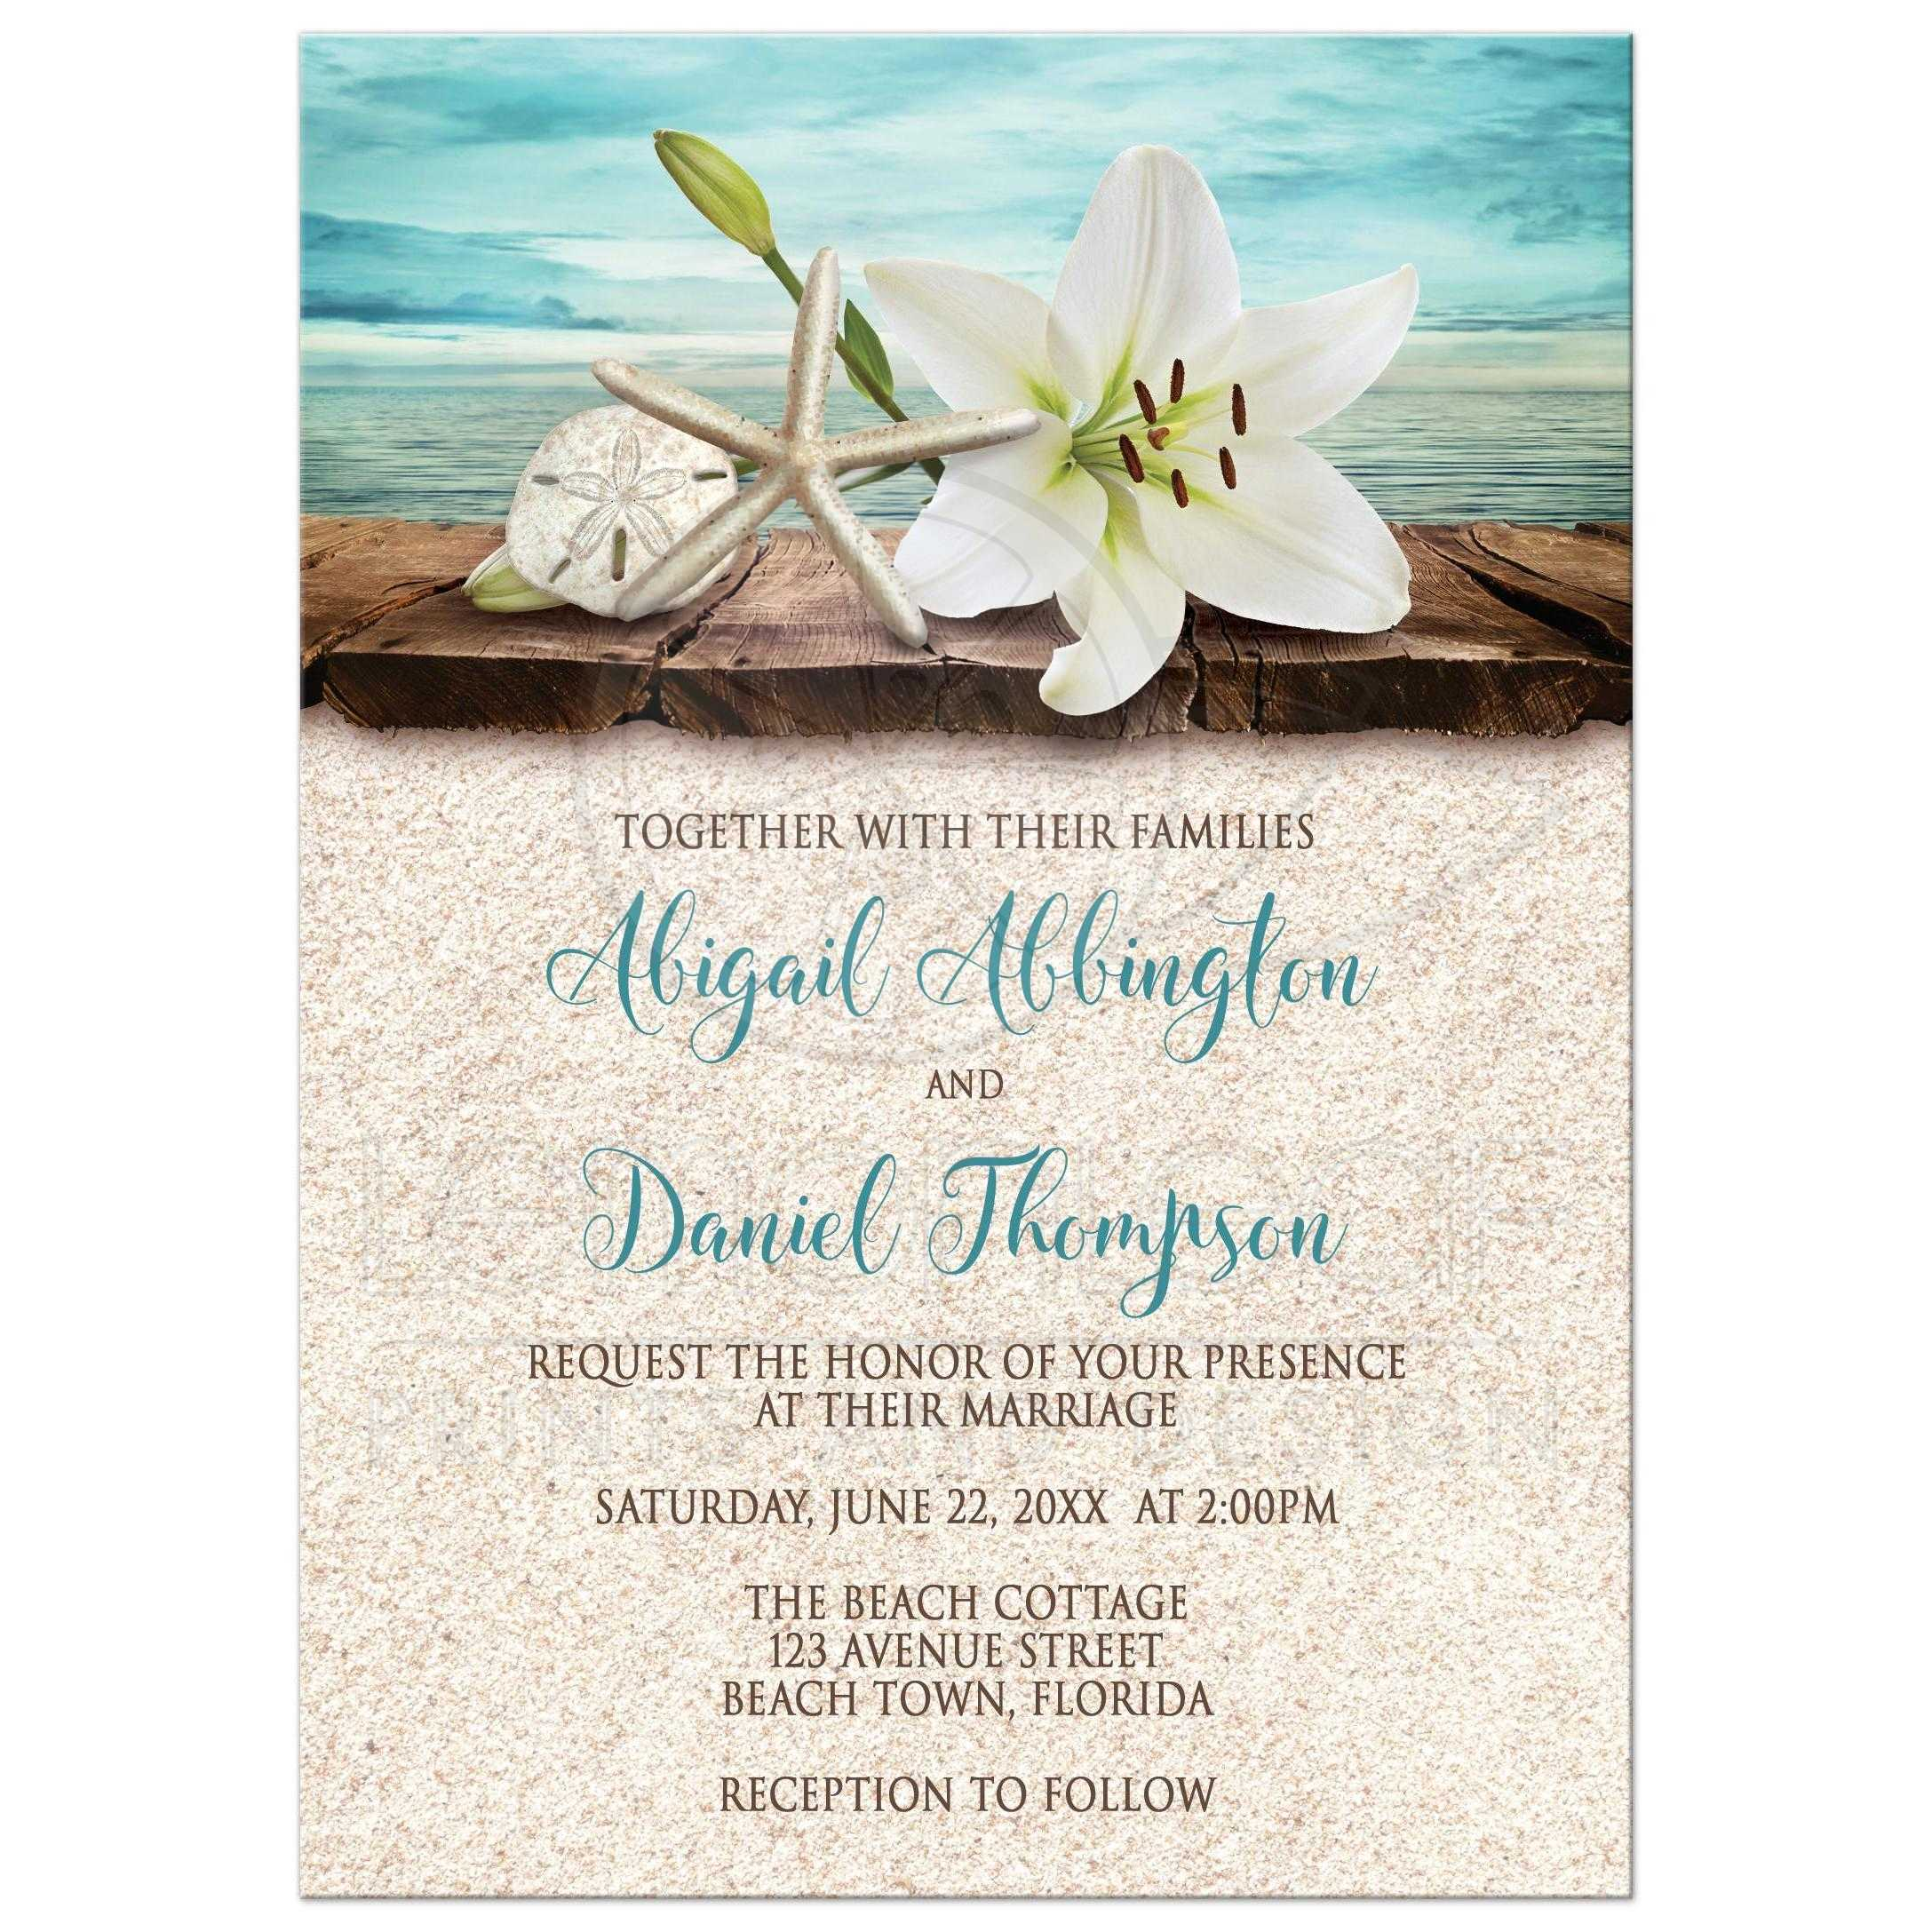 Astounding 40698 Rectangle Lily Seashell Sand Beach Wedding Invitations New Photo Wedding Invitations Walgreens Cvs Photo Wedding Invitations wedding invitation Photo Wedding Invitations